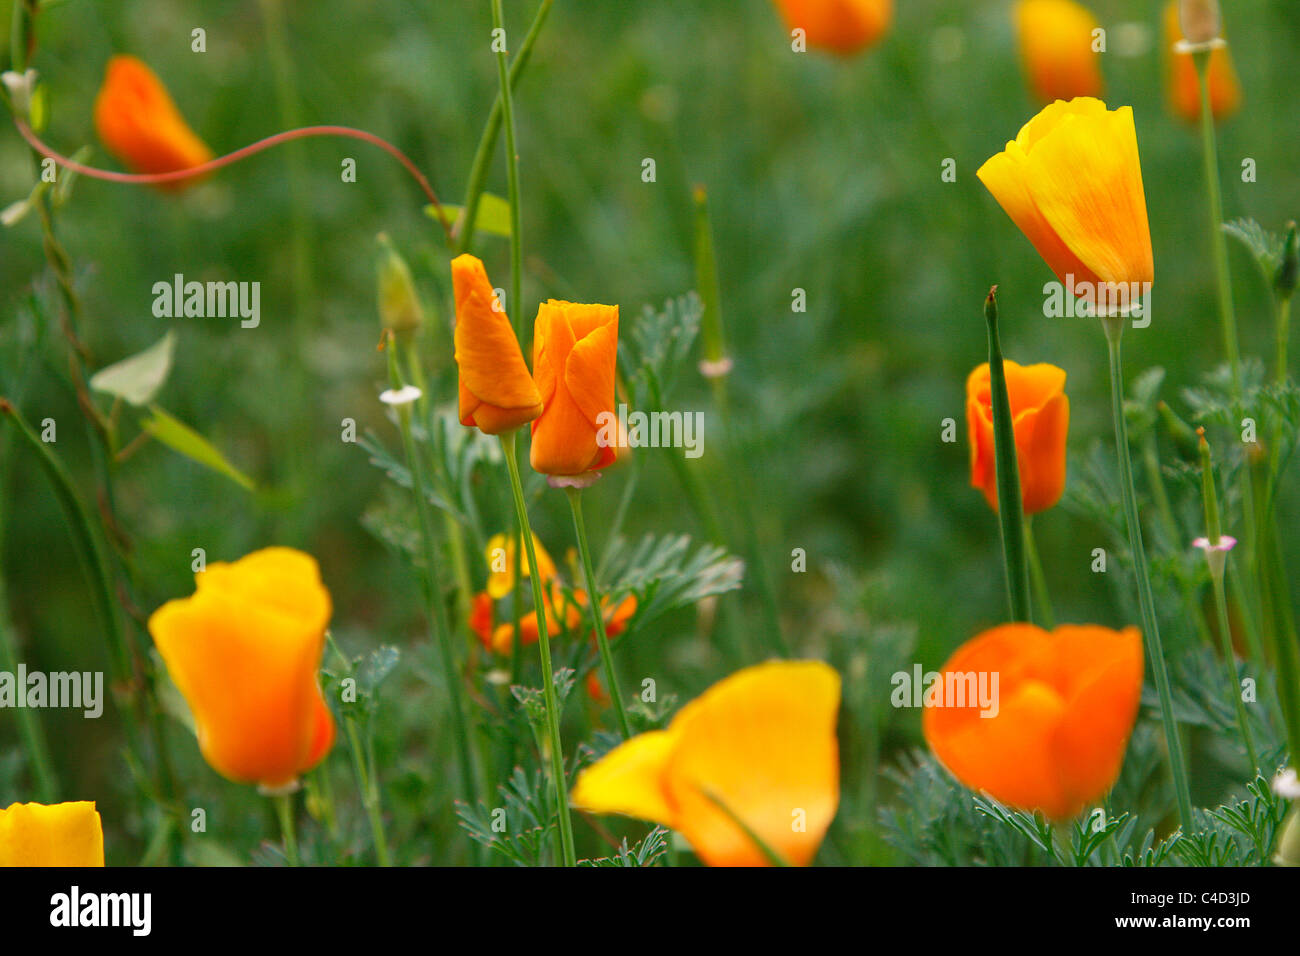 Yellow and orange poppy flowers growing idyllically in a meadow of the botanical garden in Leipzig, Germany - Stock Image